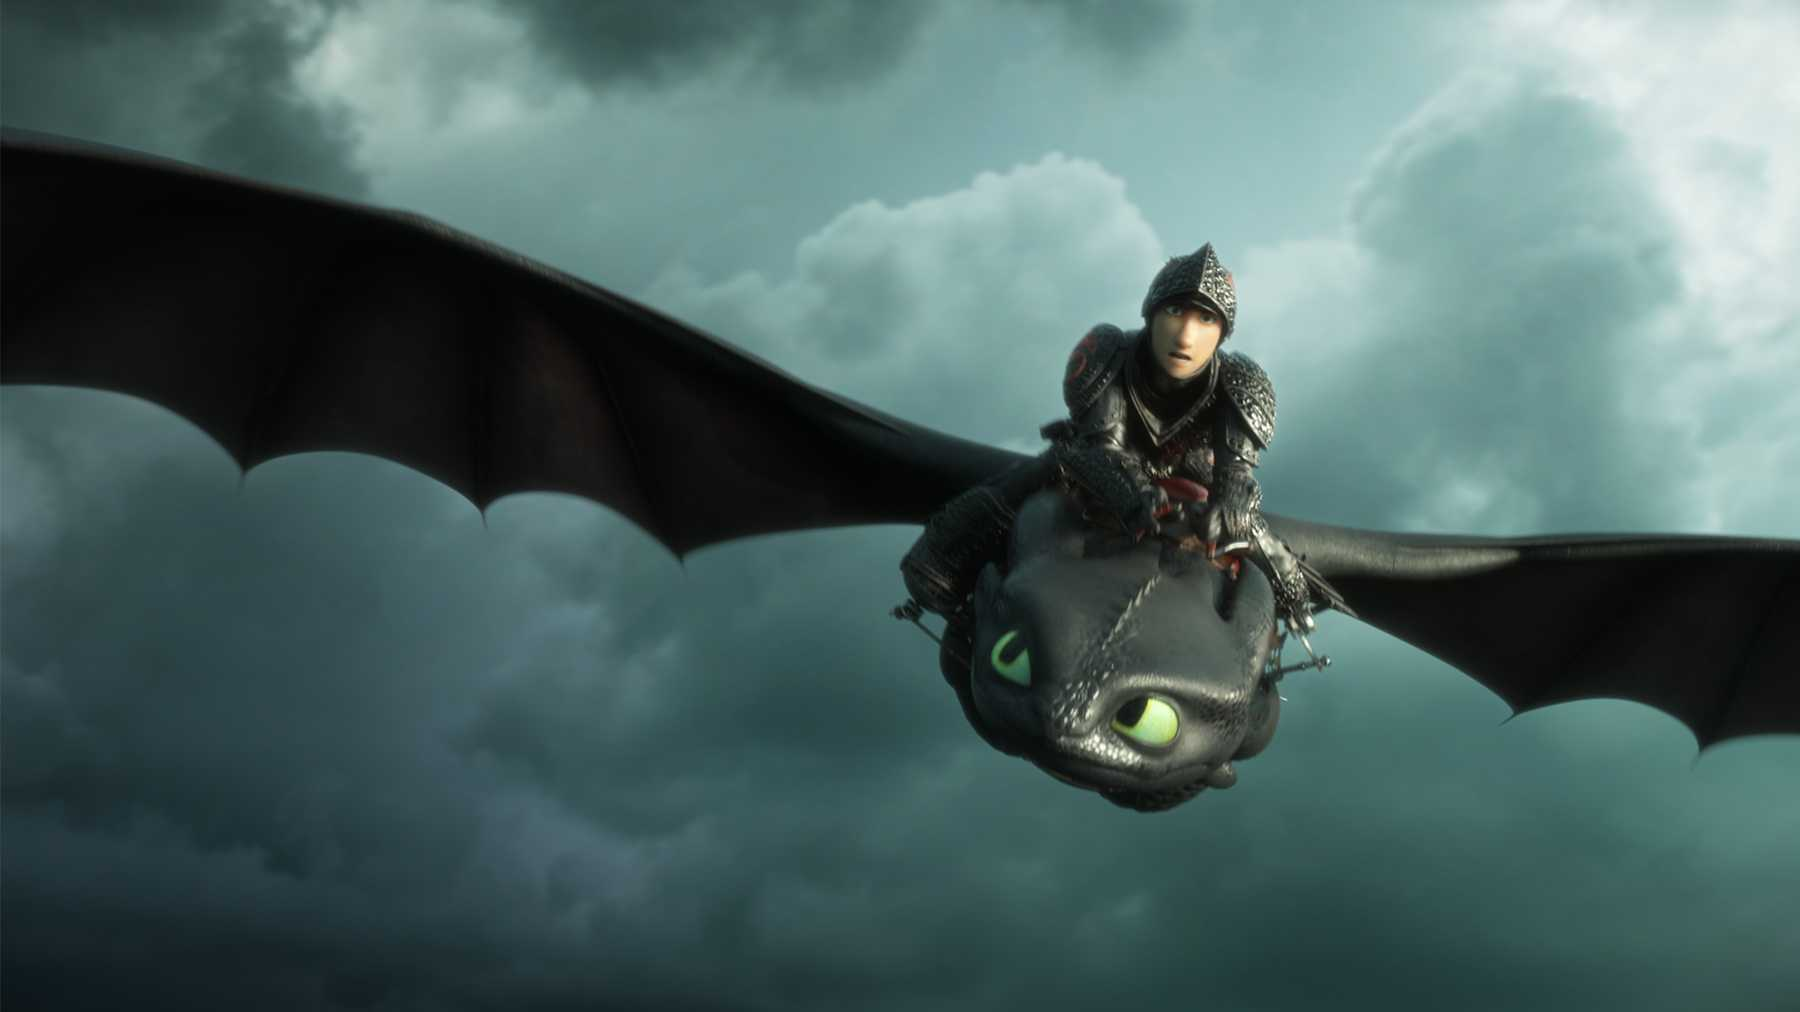 How To Train Your Dagon The Hidden World Launches A New Trailer Movies Empire